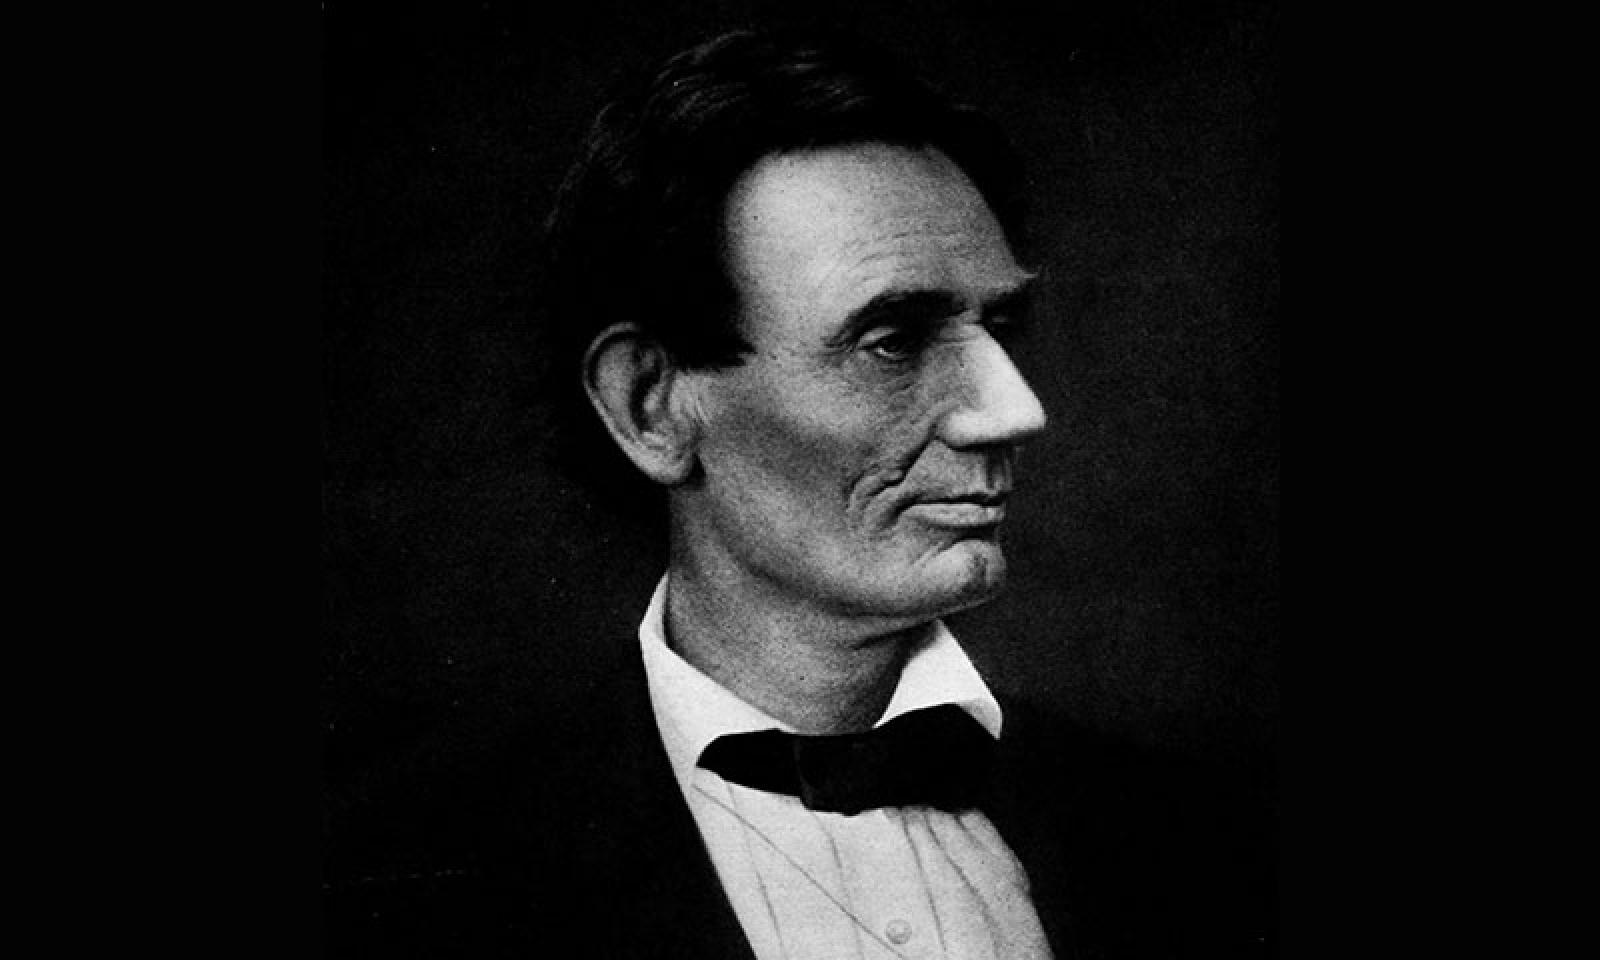 Headshot of Abraham Lincoln